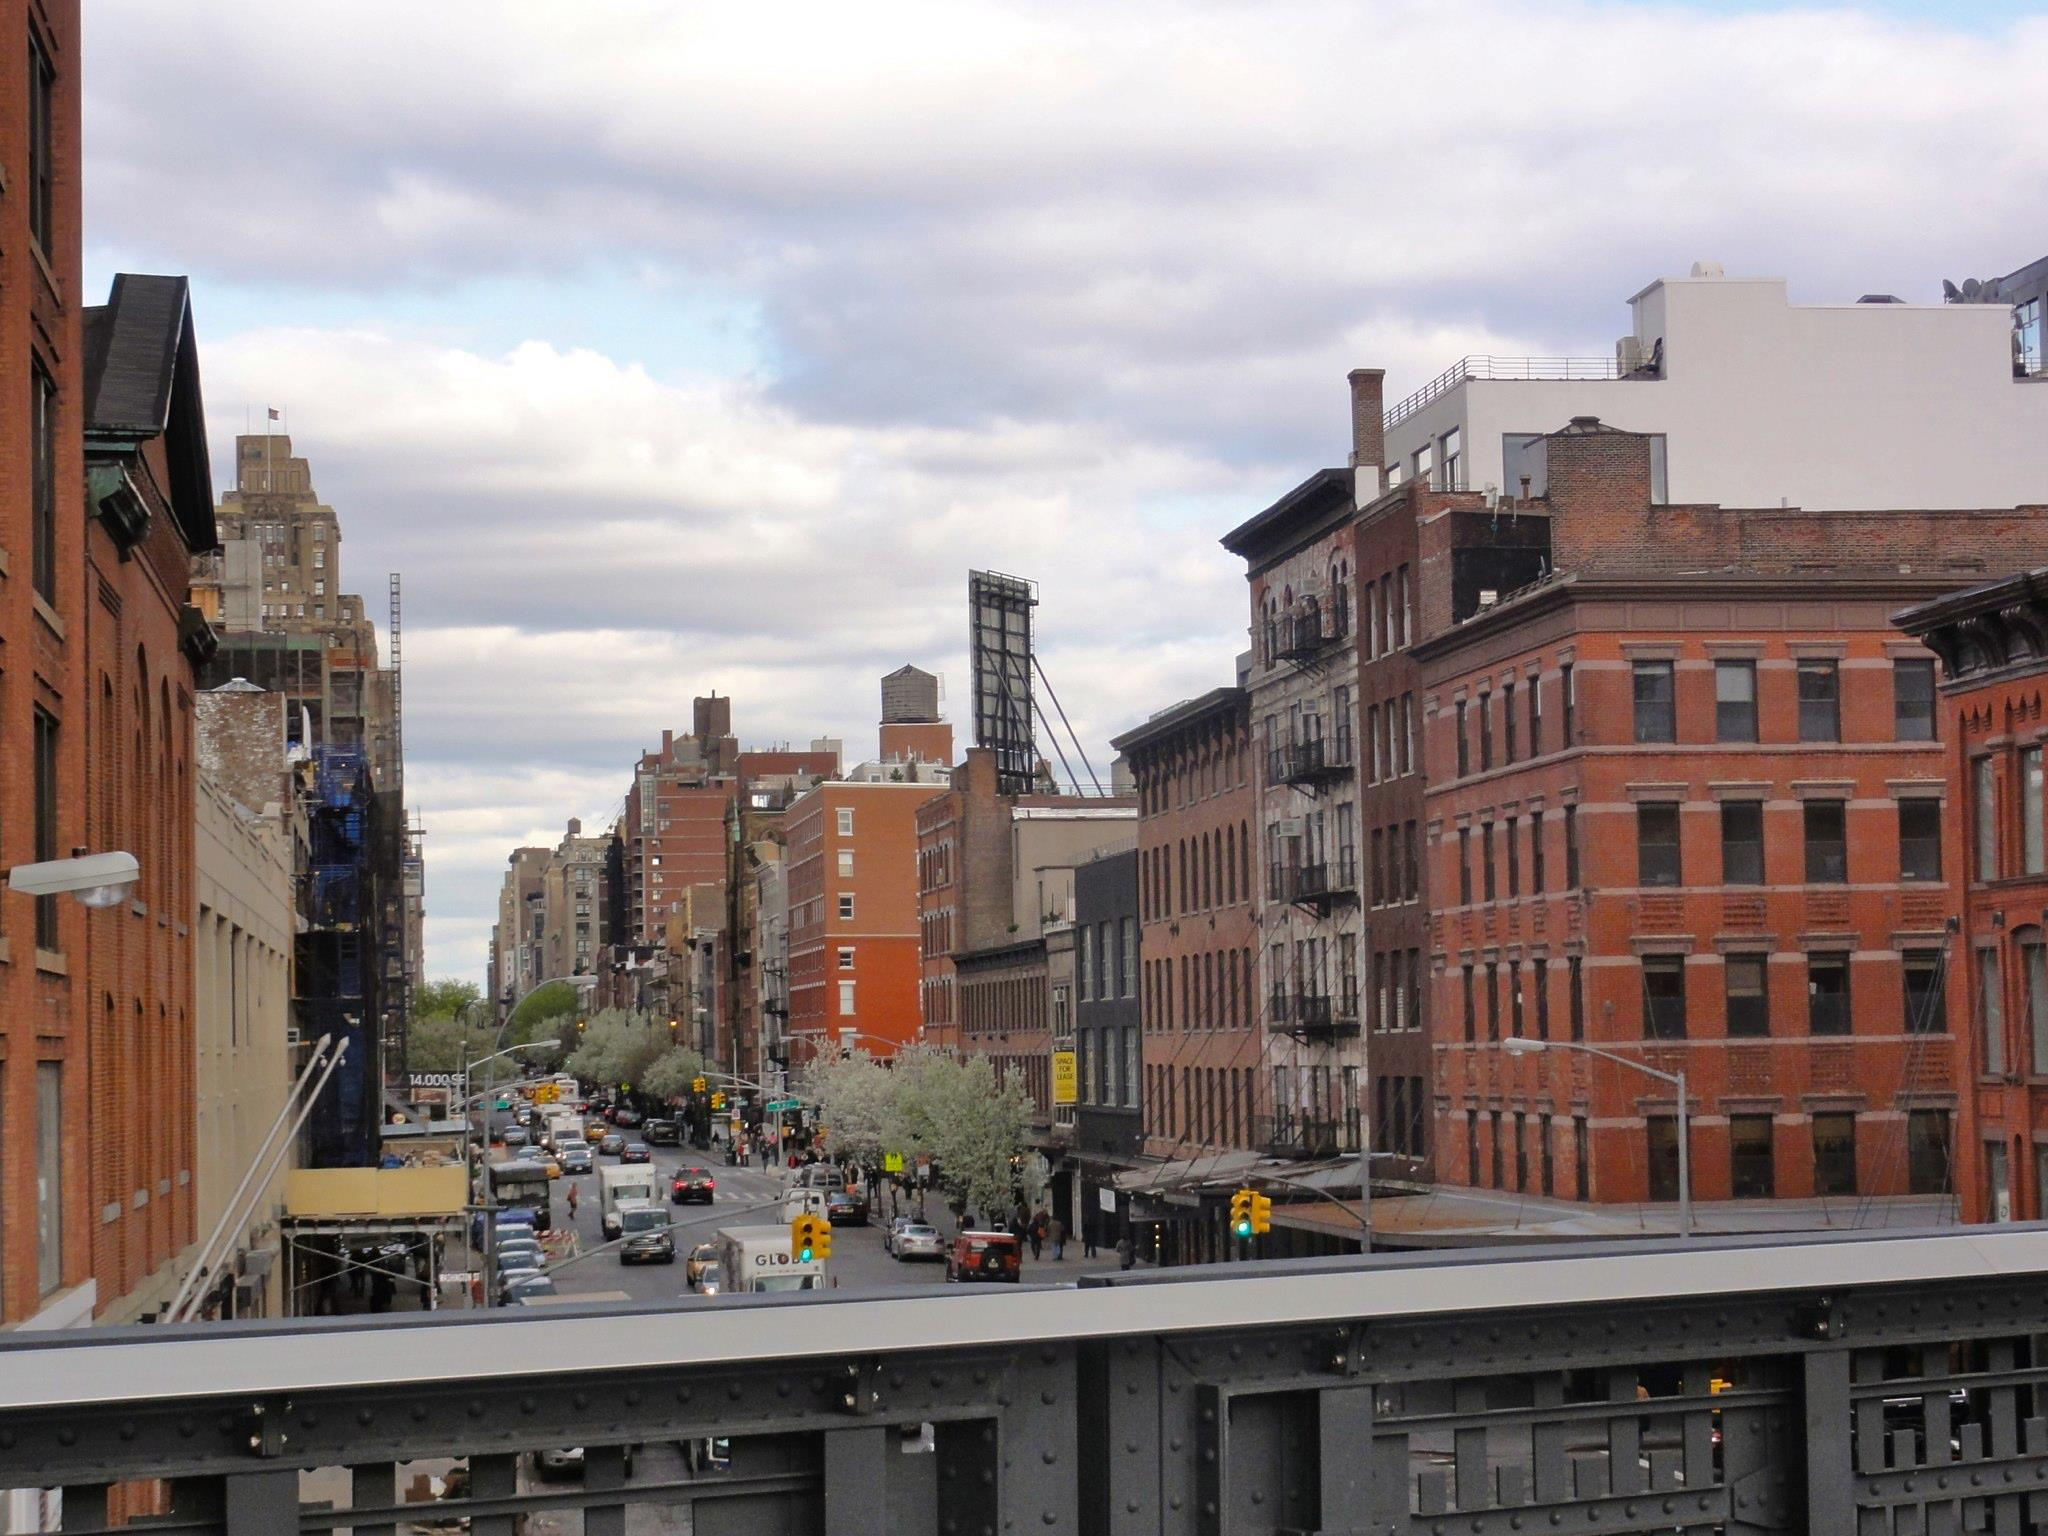 478440_10150667460197545_507947544_9435613_1759162492_o The High Line (suite)